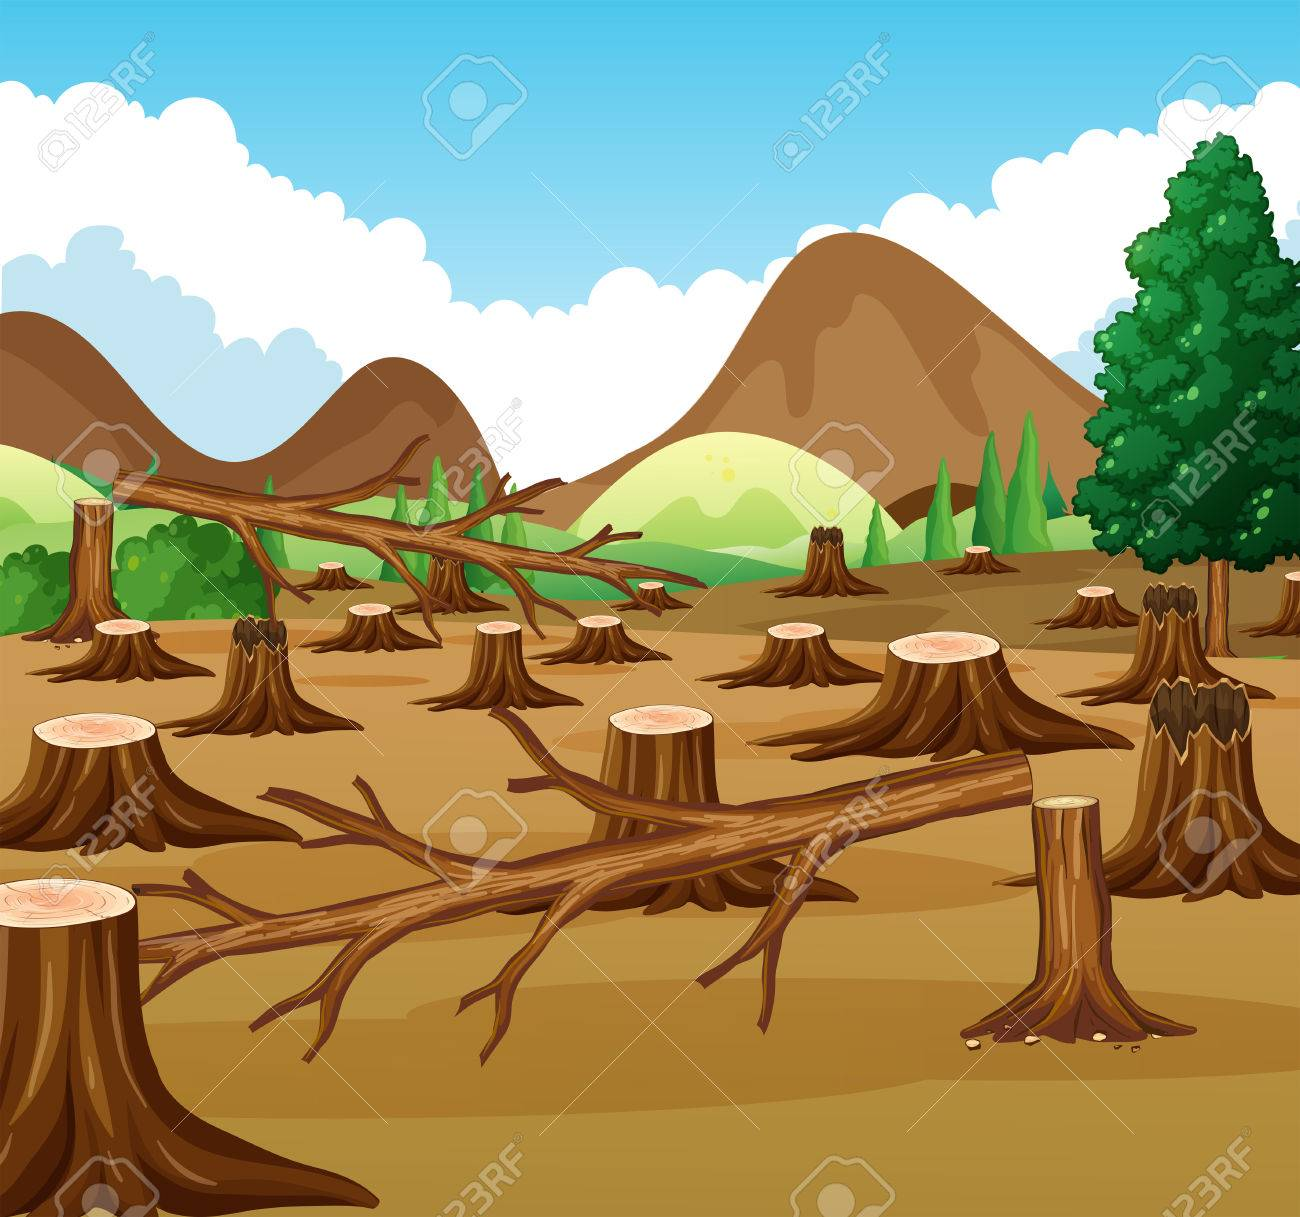 Mountain scene with deforestation view illustration.